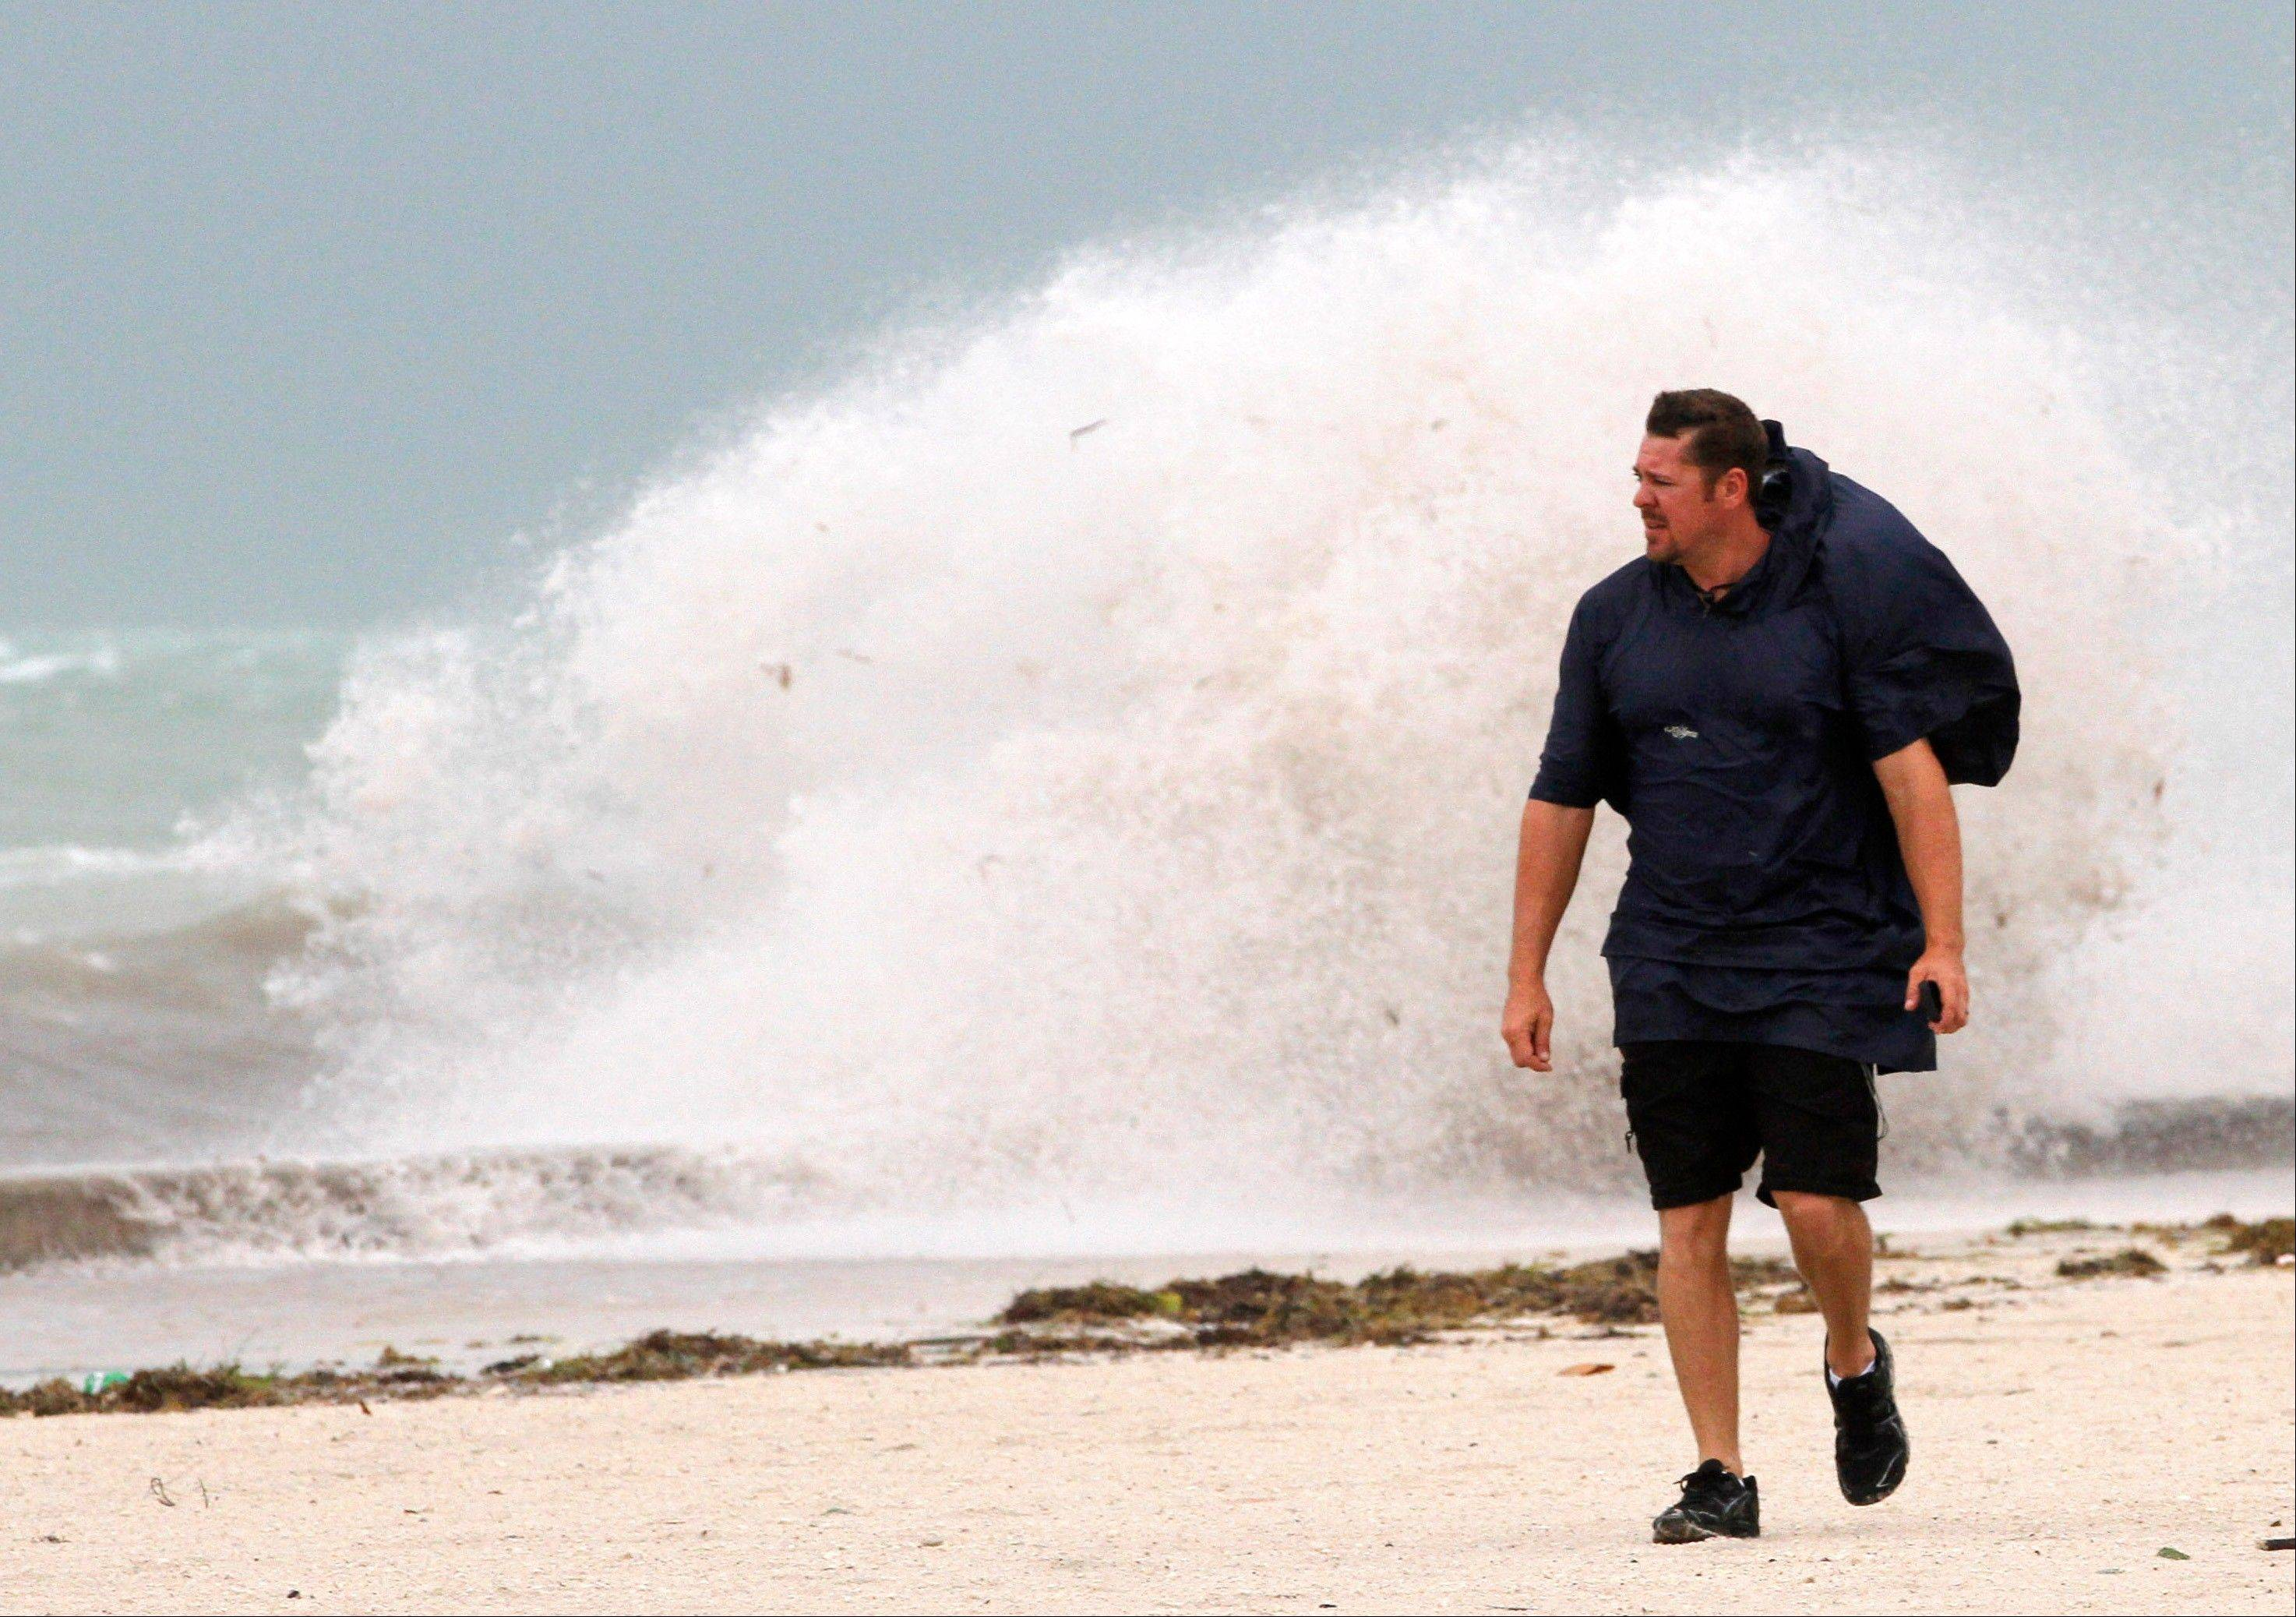 A man walks on the beach in Key West, Fla., Sunday, Aug. 26, as heavy winds hit the northern coast from Tropical Storm Isaac. Isaac is expected to continue streaming across Marion County Monday as it continues toward the northern Gulf of Mexico. National Weather Service officials in Jacksonville on Sunday said Marion County began getting rain bands from Isaac around 2 p.m. and that the rain would continue through Tuesday.